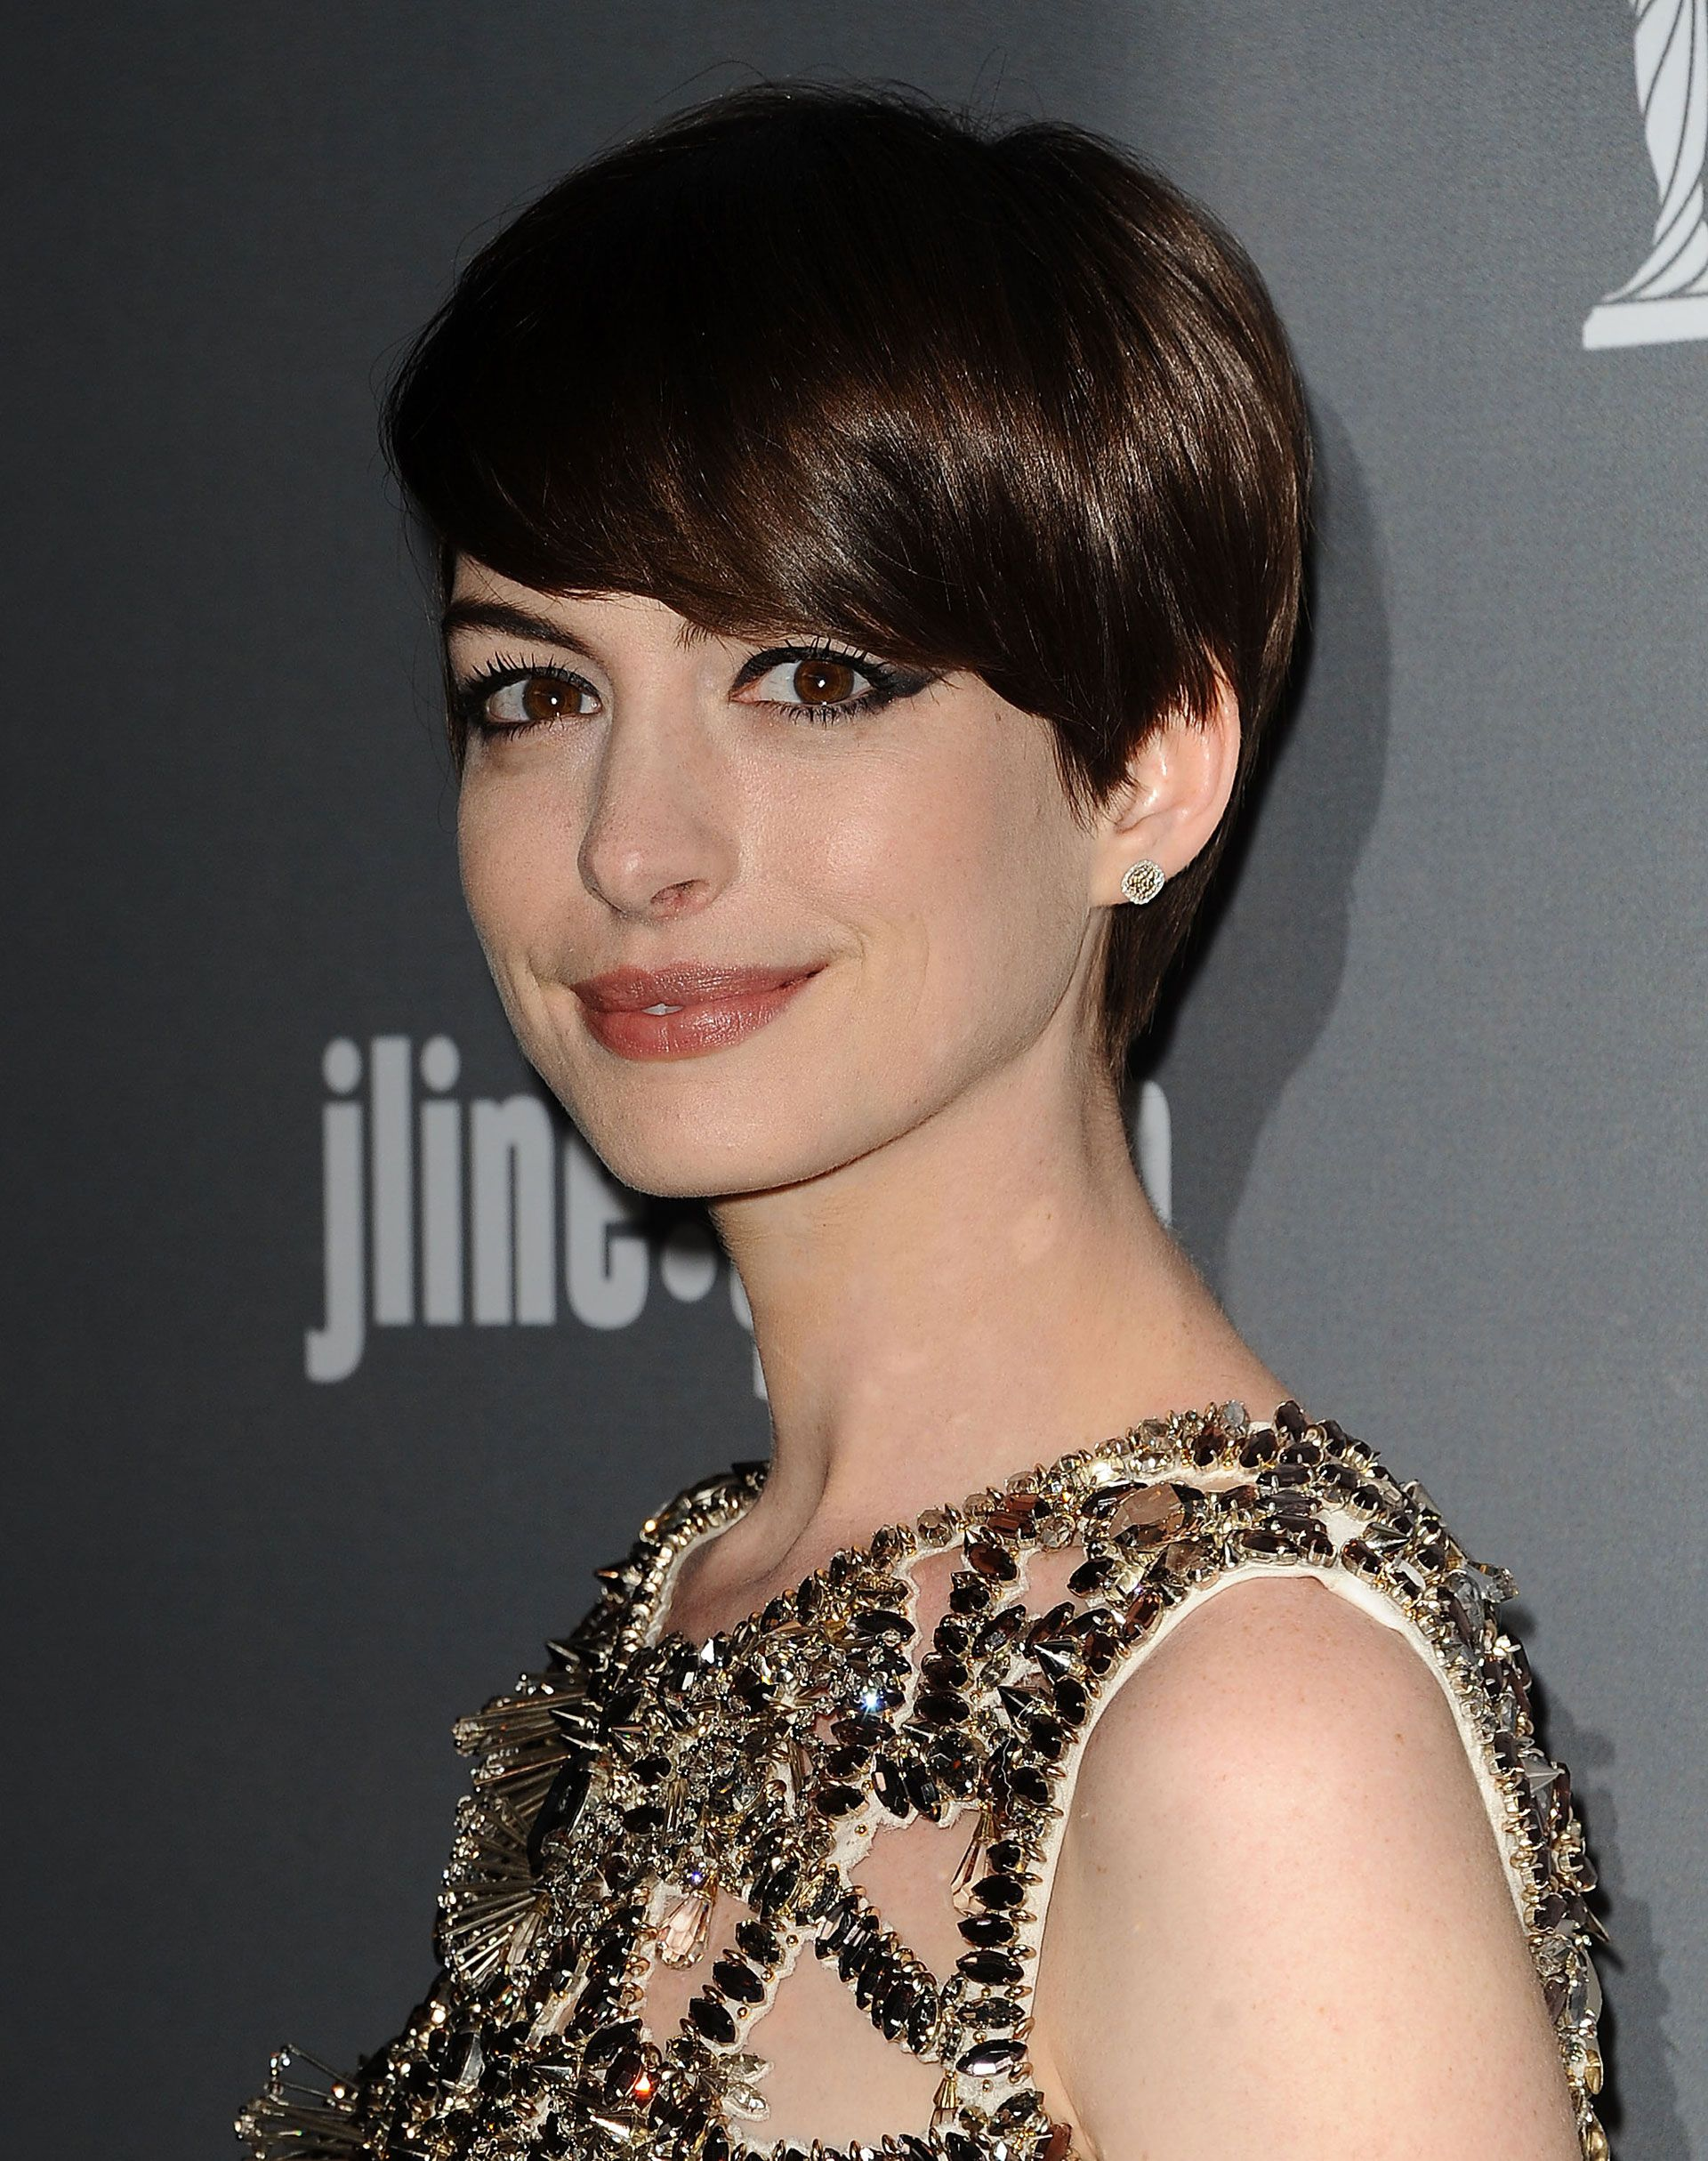 The 25 Cutest Short Hairstyles And How To Pull Them Off